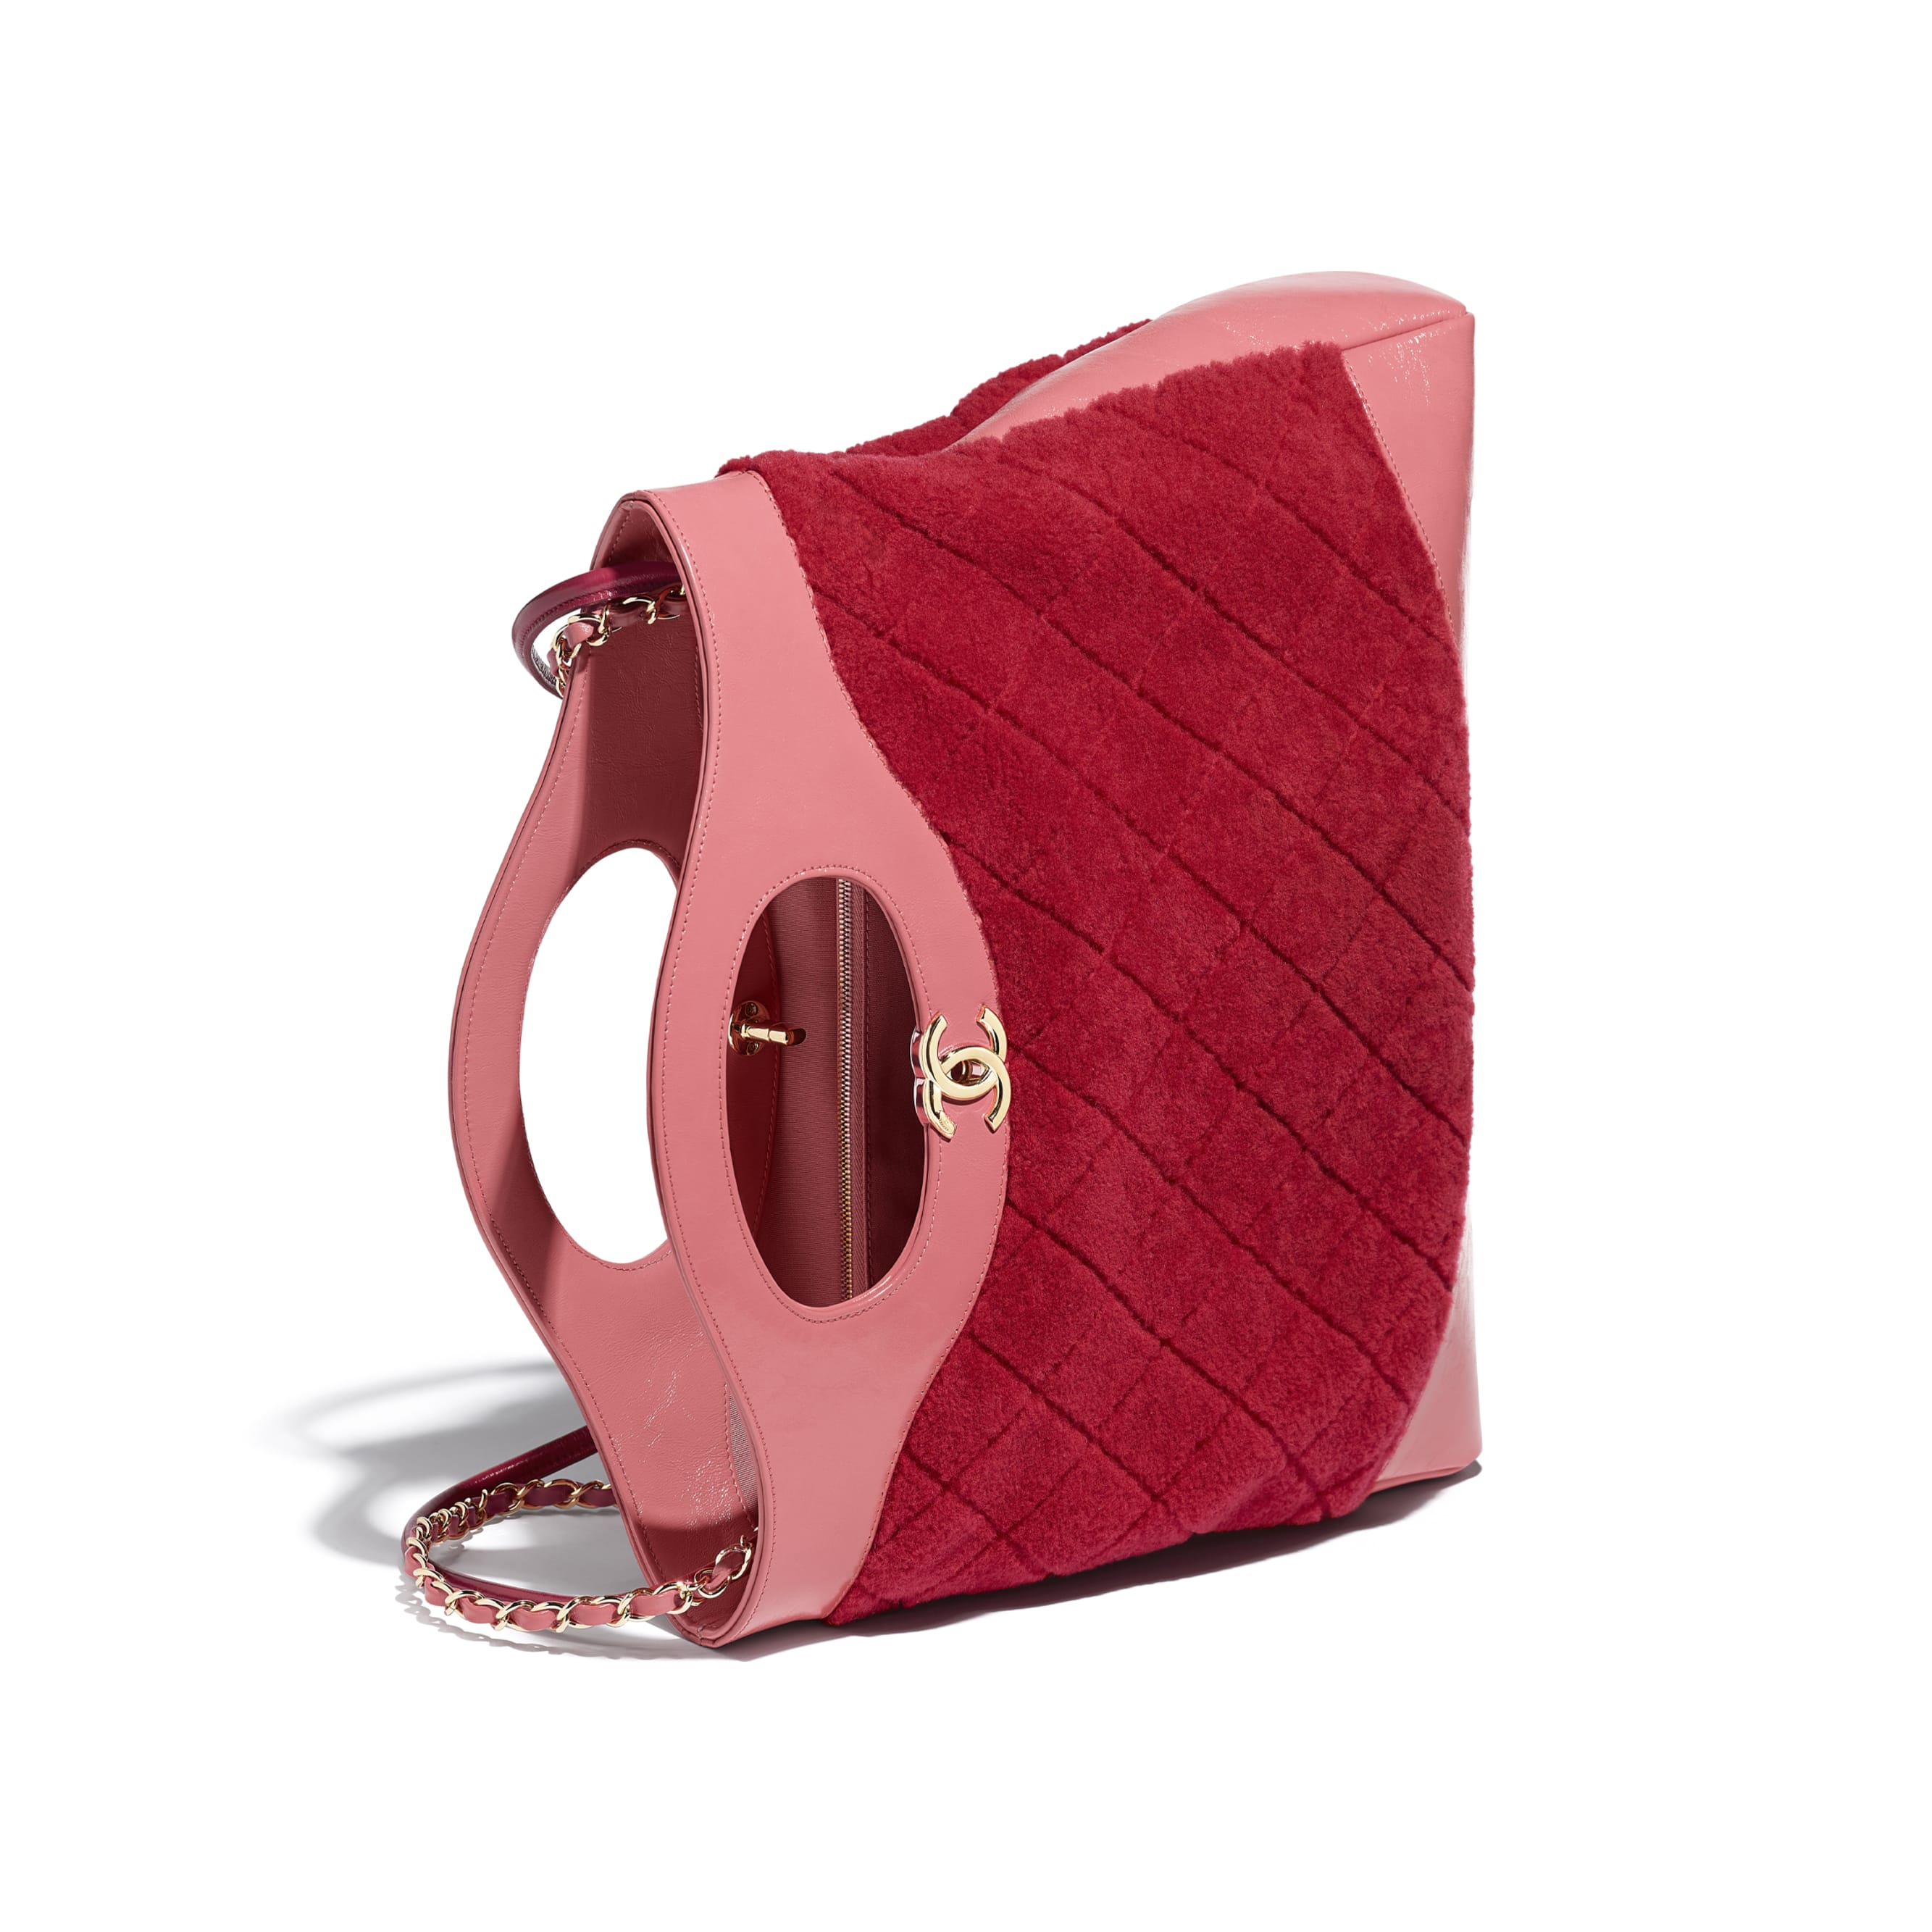 CHANEL 31 Shopping Bag - Red & Pink - Shearling Sheepskin, Calfskin & Gold-Tone Metal - Other view - see standard sized version